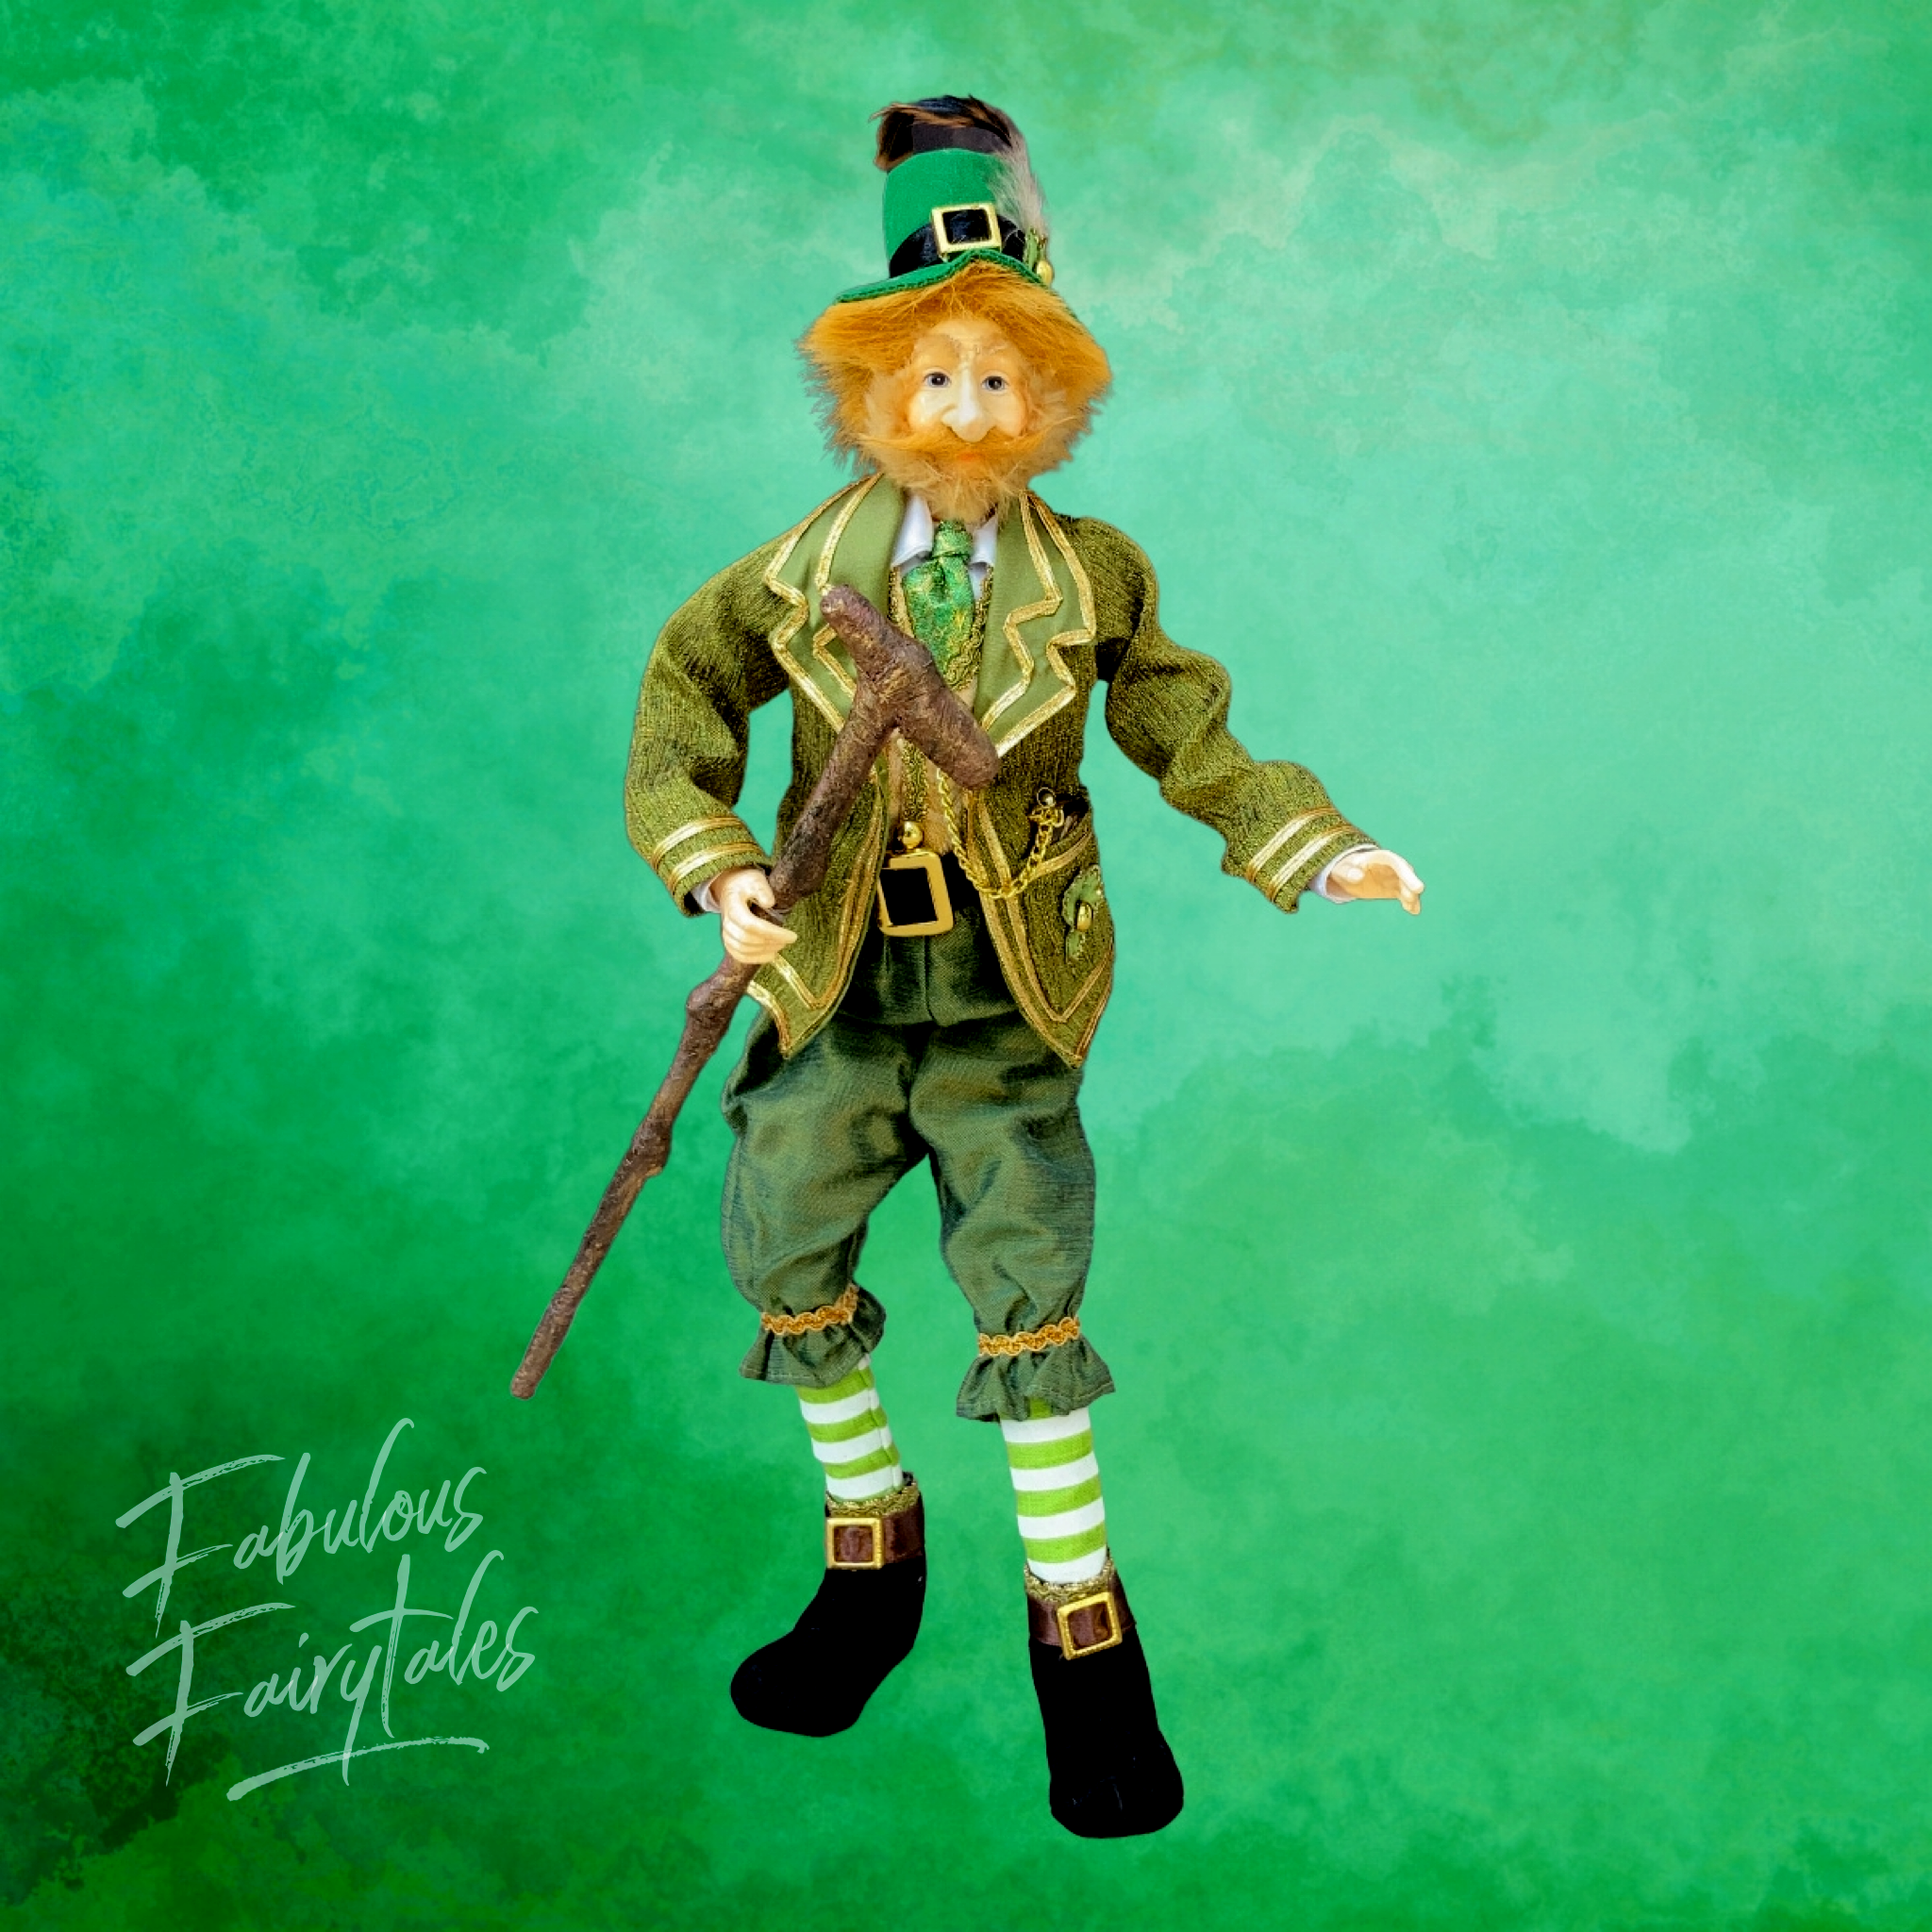 Lucky Irish Leprechaun display dolls and figures